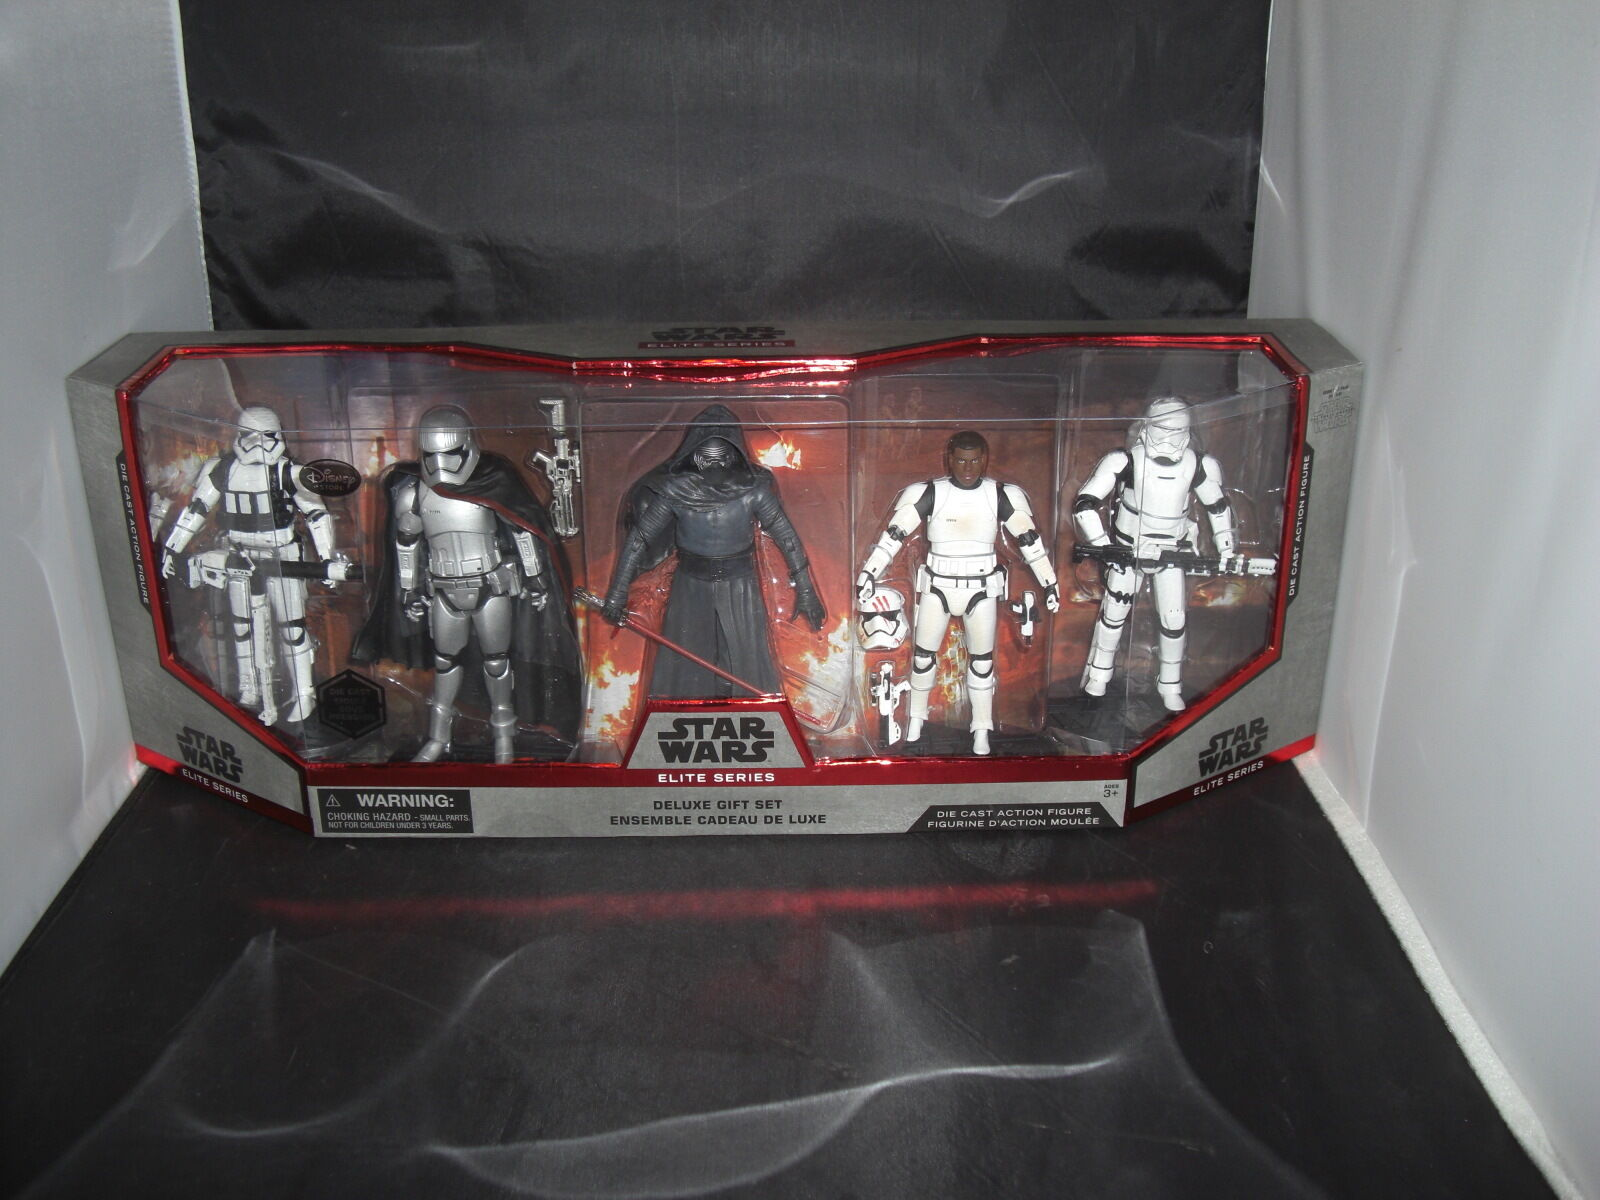 Star Wars The Force Awakens Elite Serie Deluxe Geschenk Set